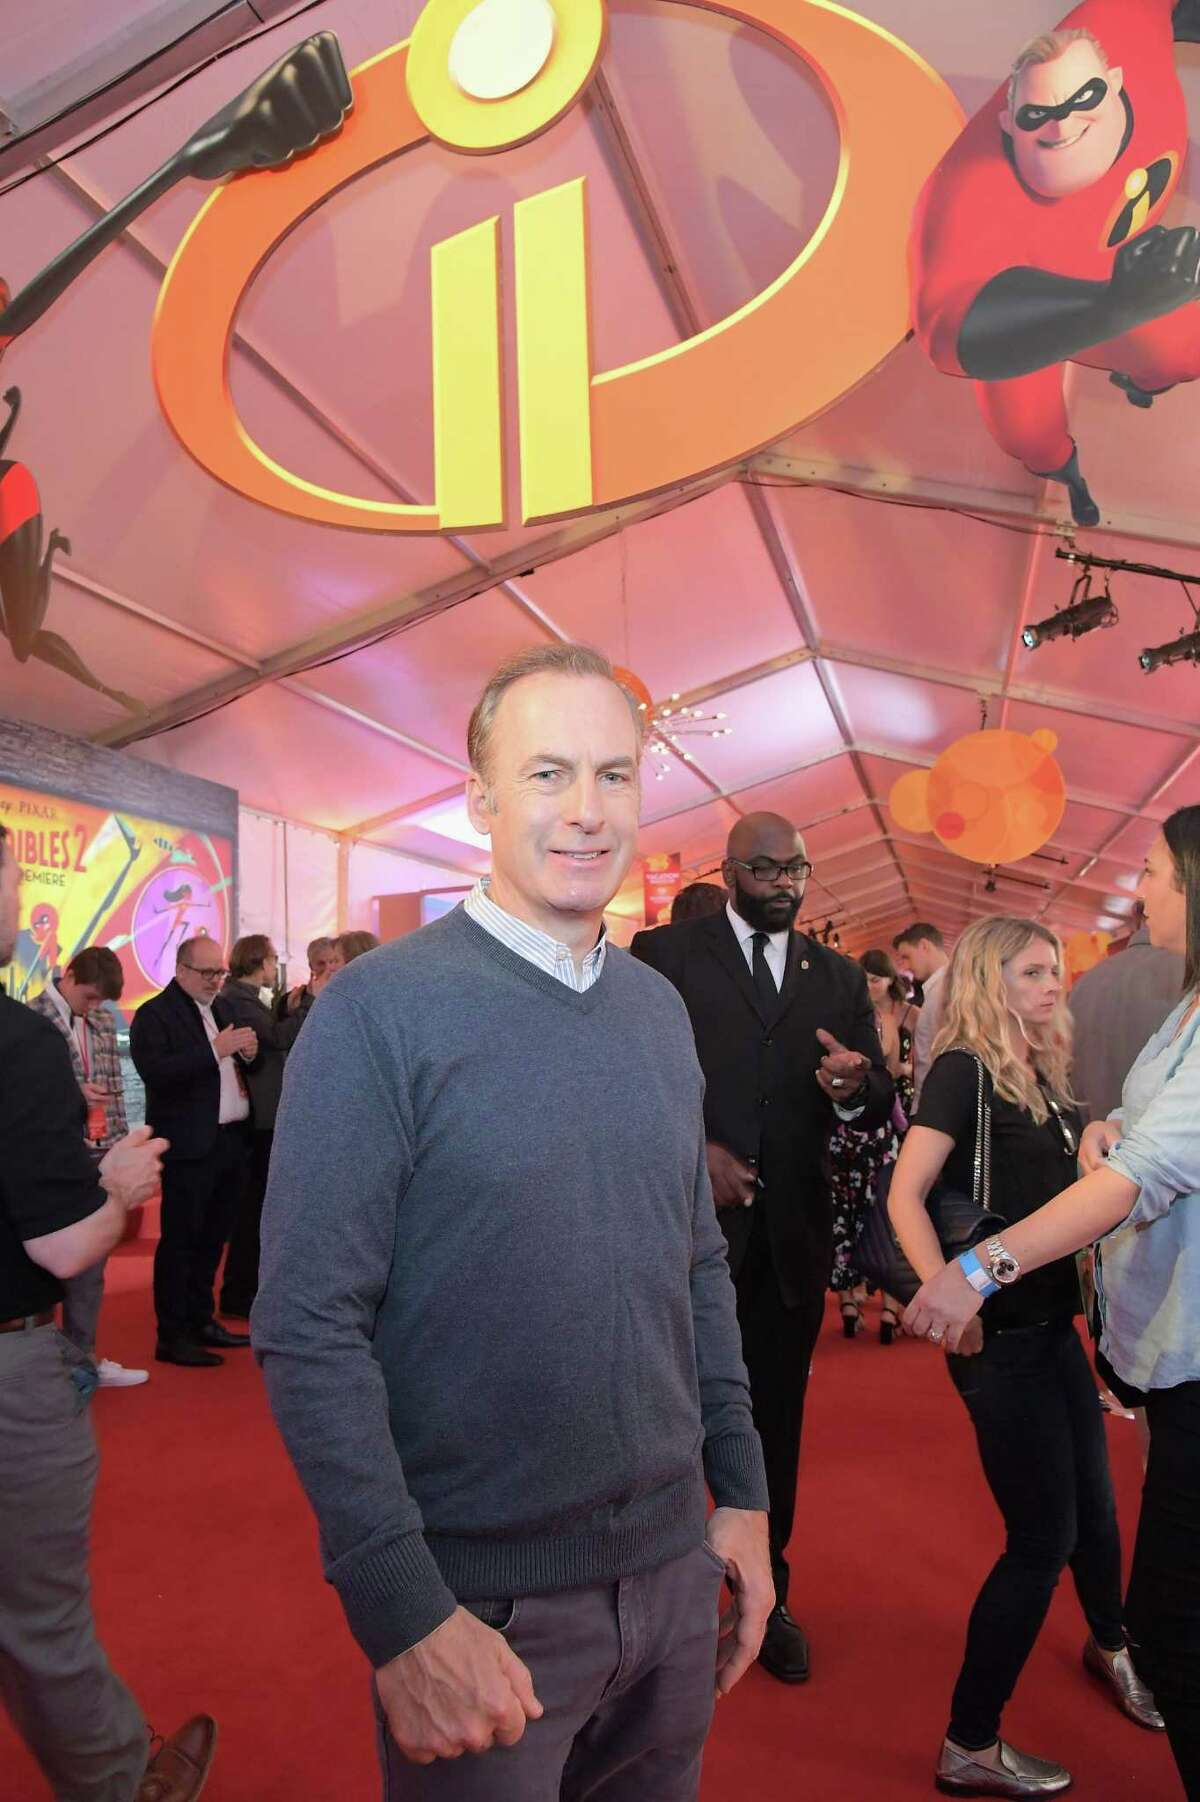 Bob Odenkirk, who plays a new character in the sequel, at tends the June 5 premiere at Los Angeles' El Capitan Theatre.